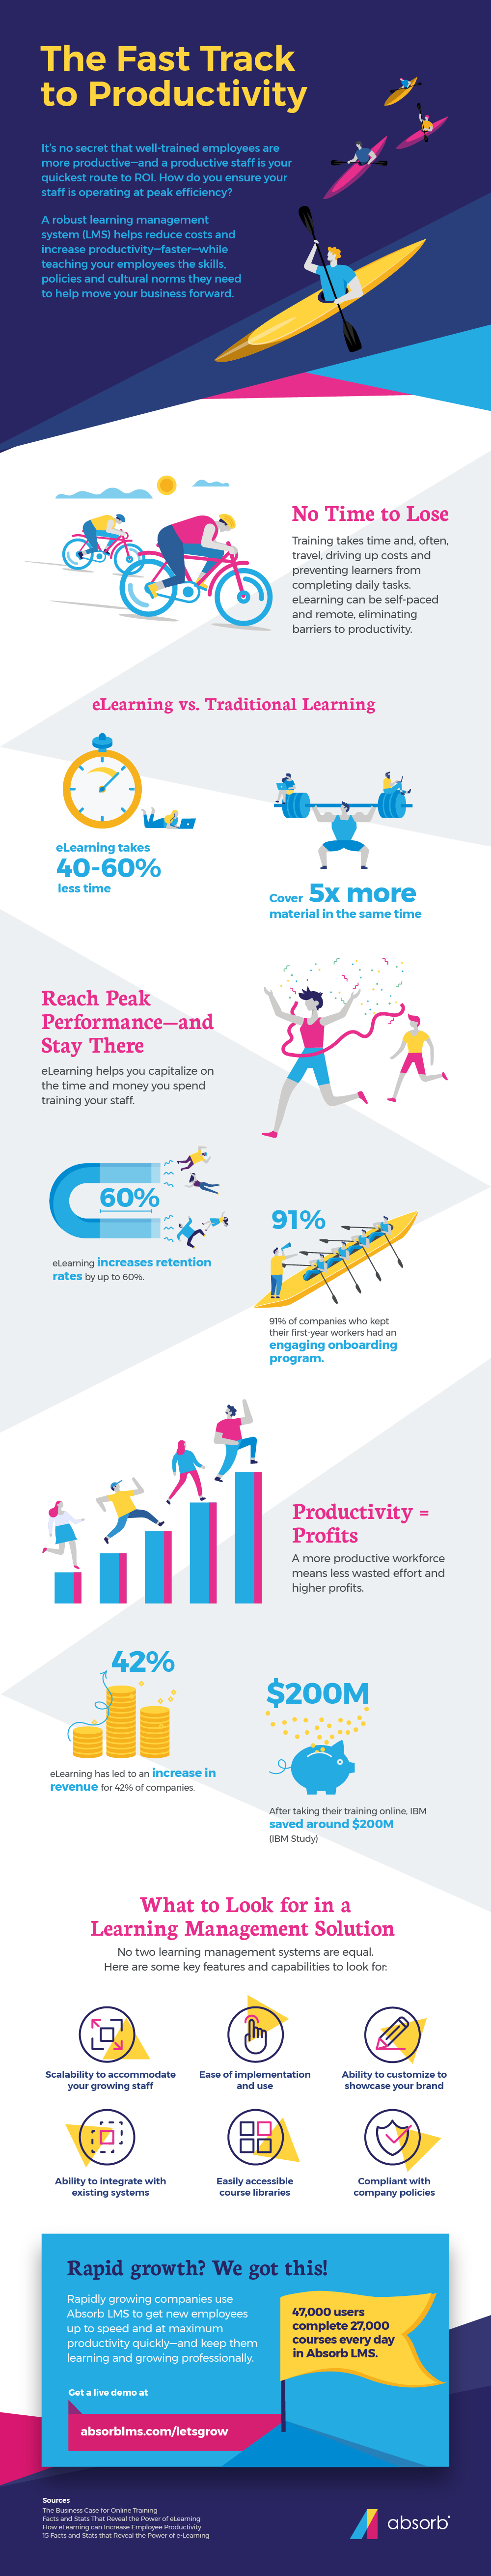 Infographic - The Fast Track to Productivity